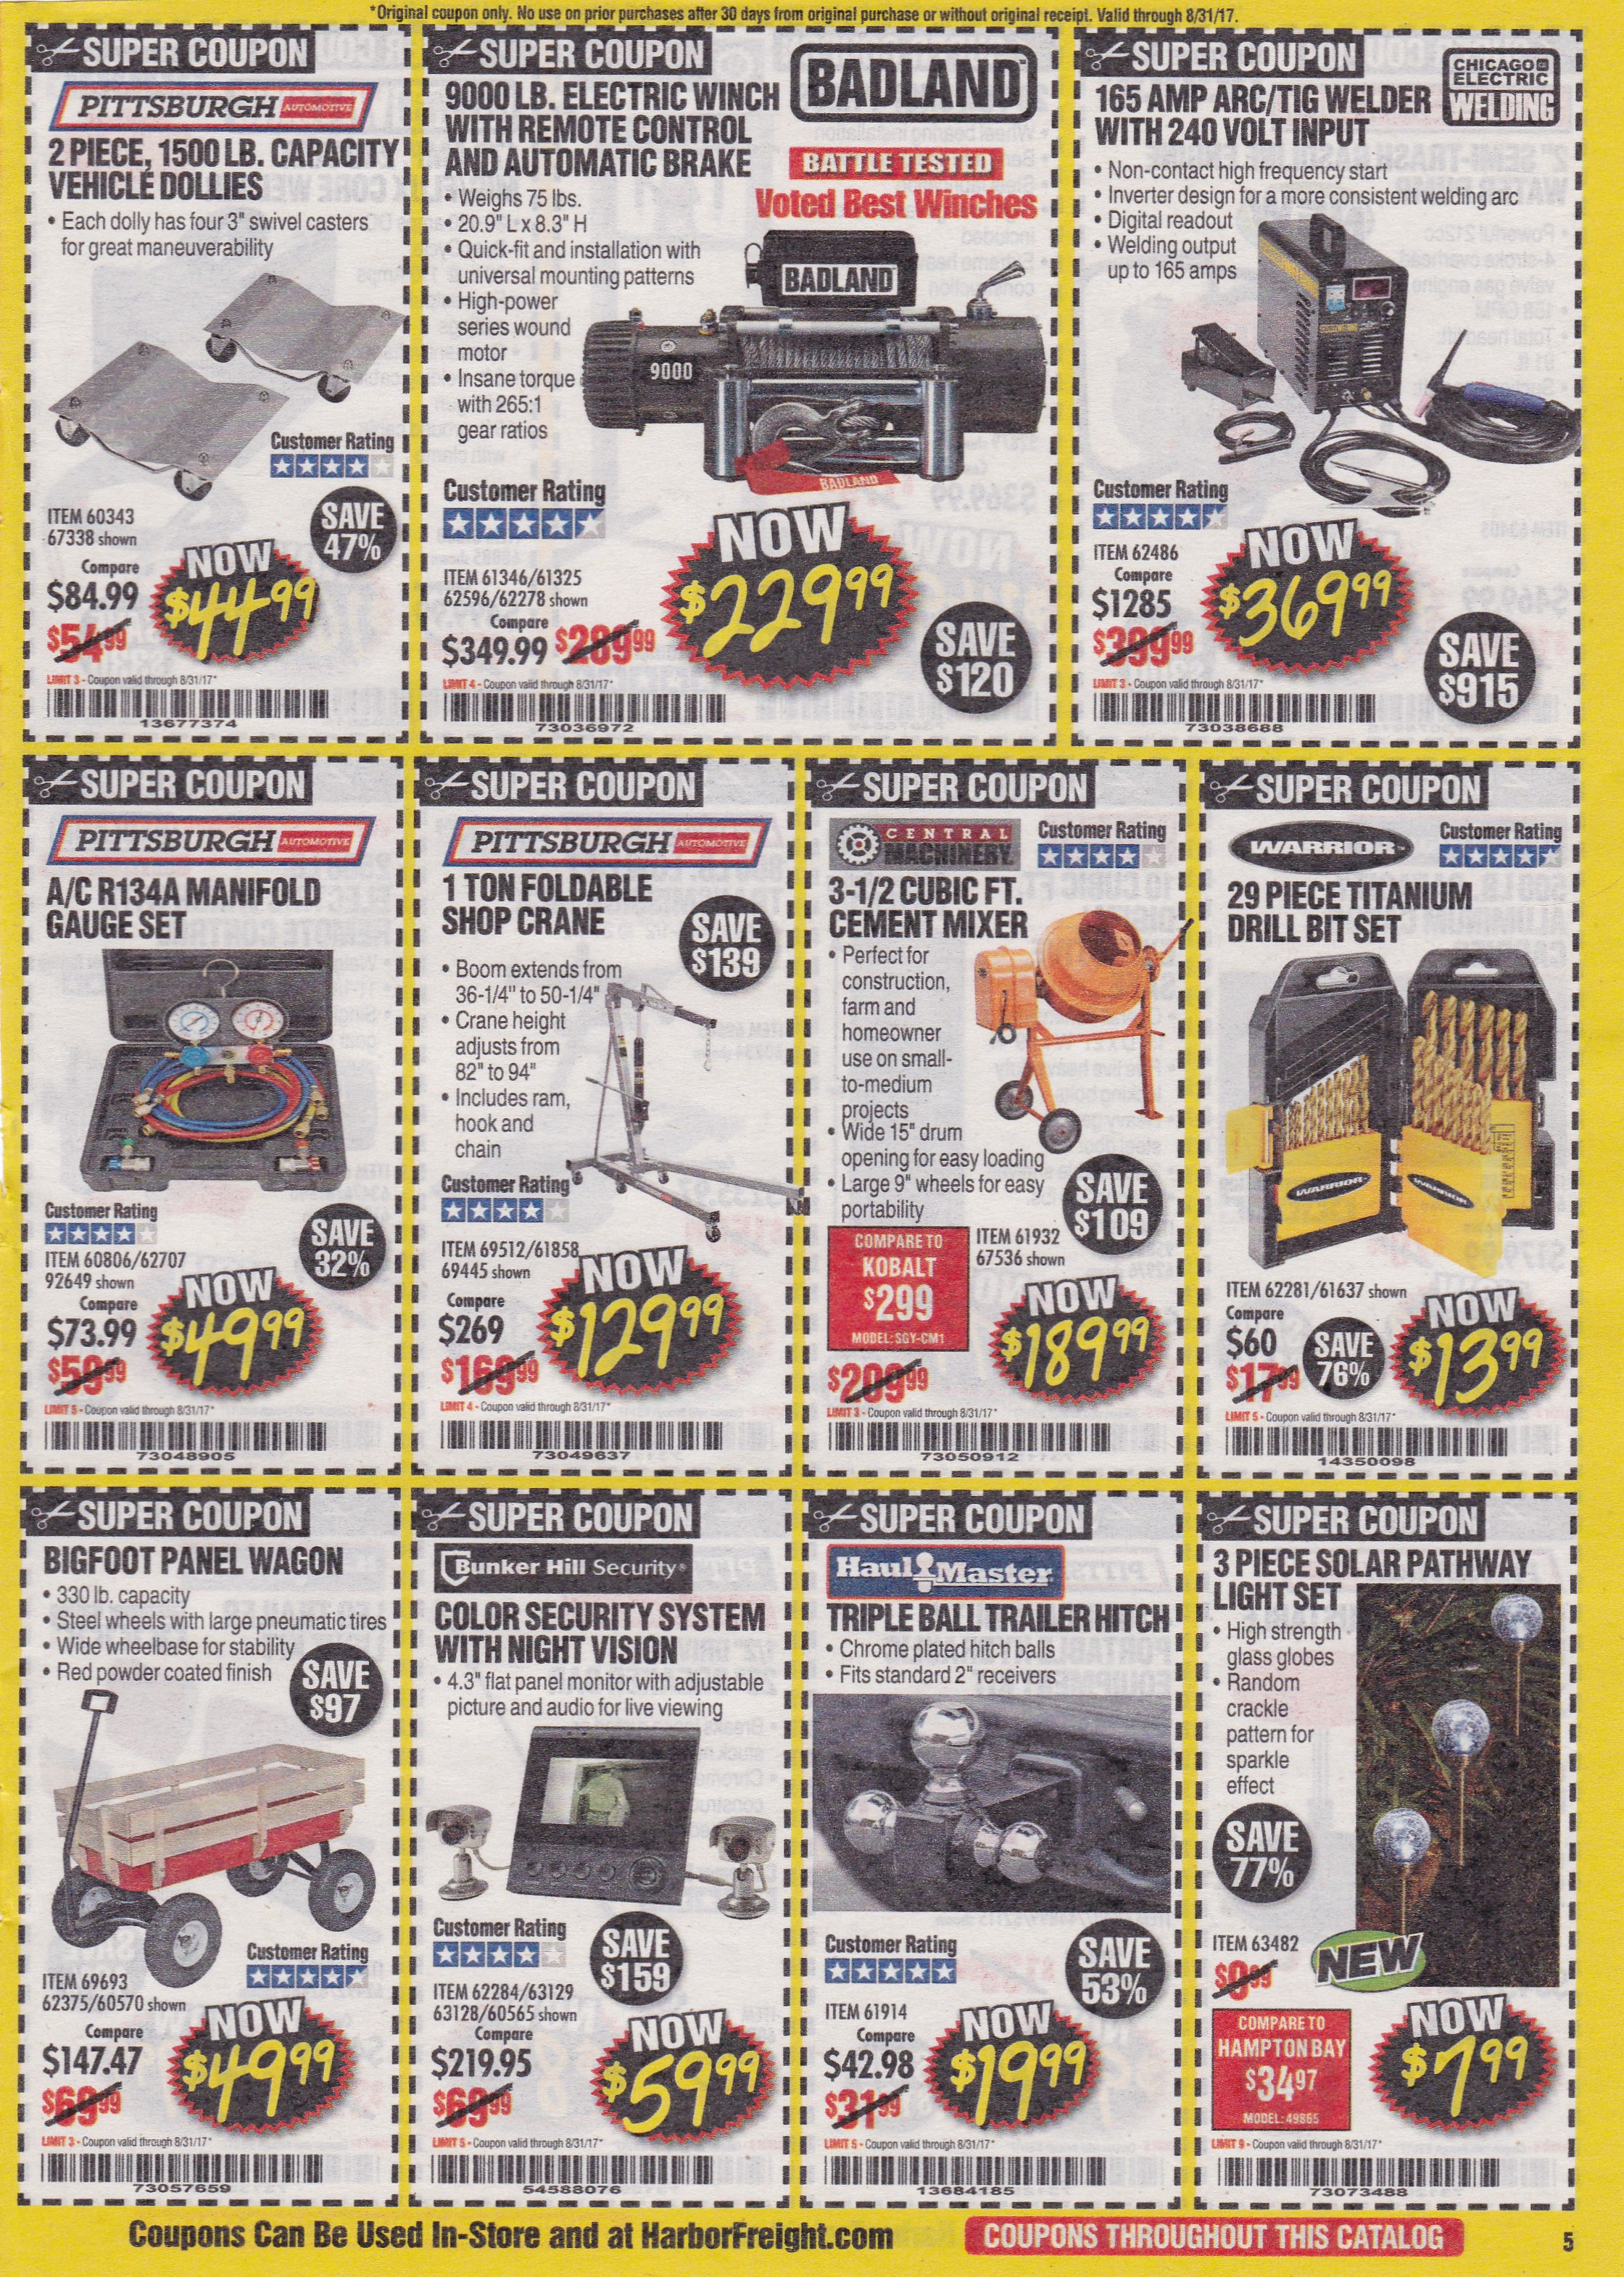 monthly harbor freight super coupons expiring 8/31/17